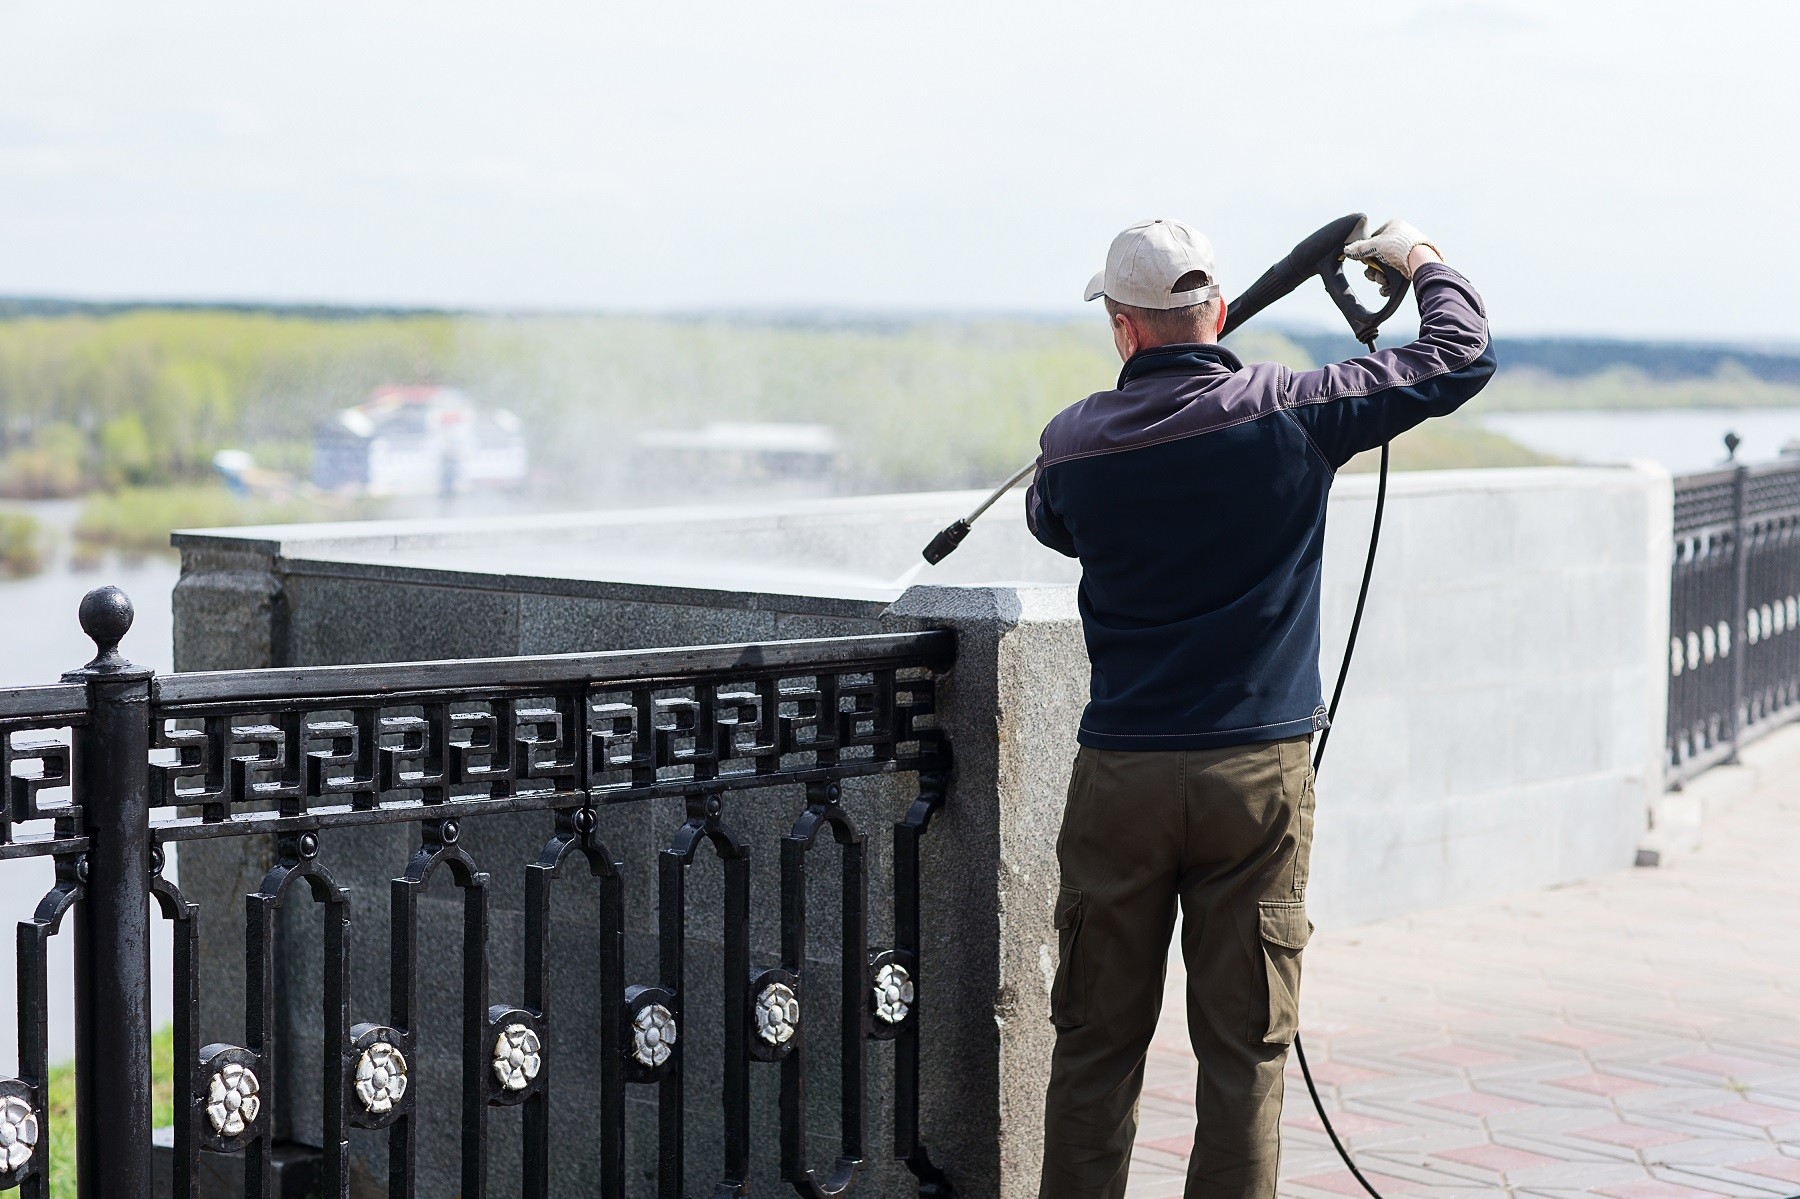 We are the Pressure Washing and Power Washing Pros